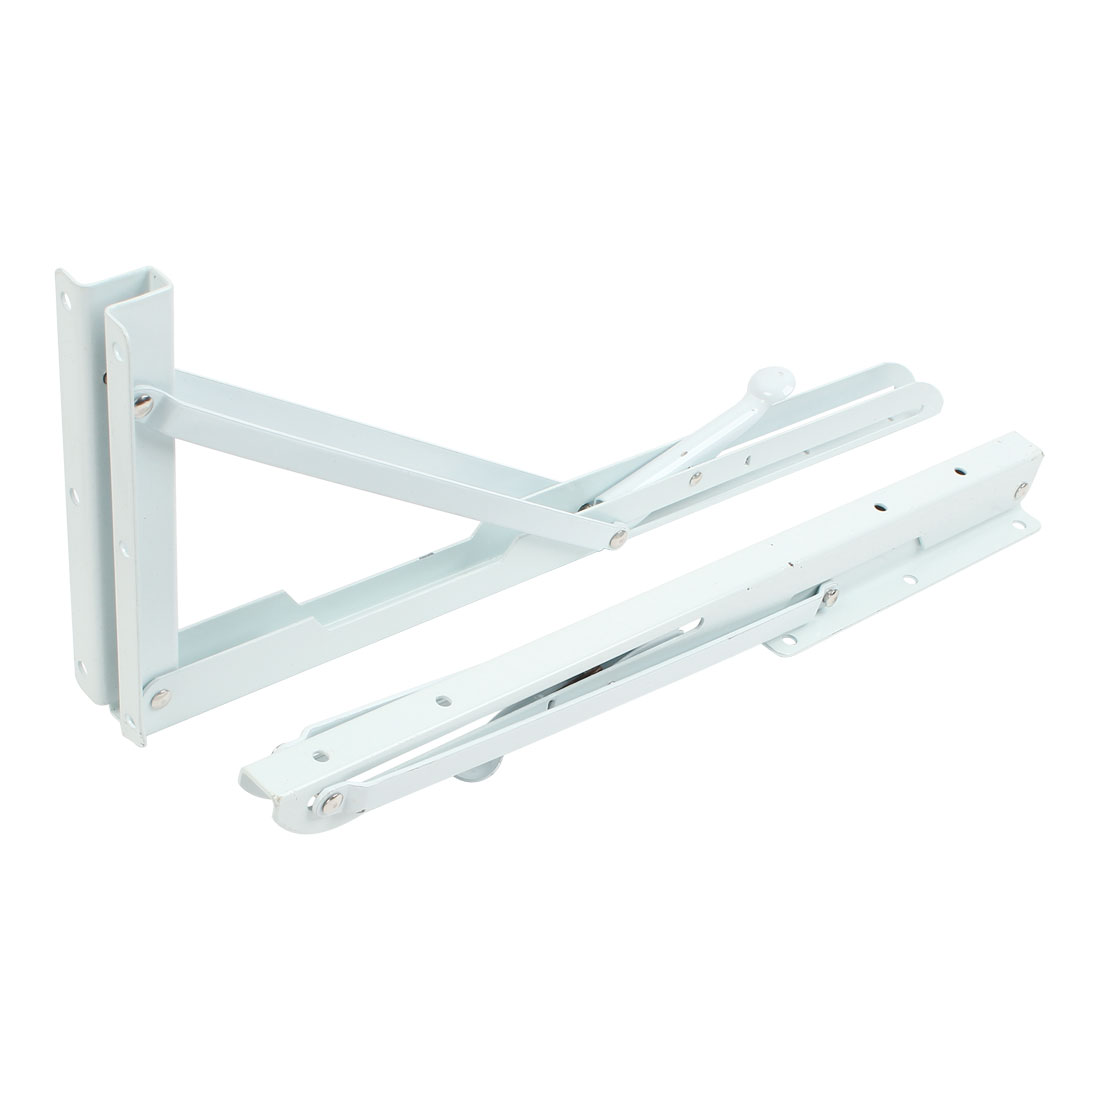 "2pcs Wall Mount Right Angle Store Shop Projector Folding Shelf Bracket 16"" x 6"""